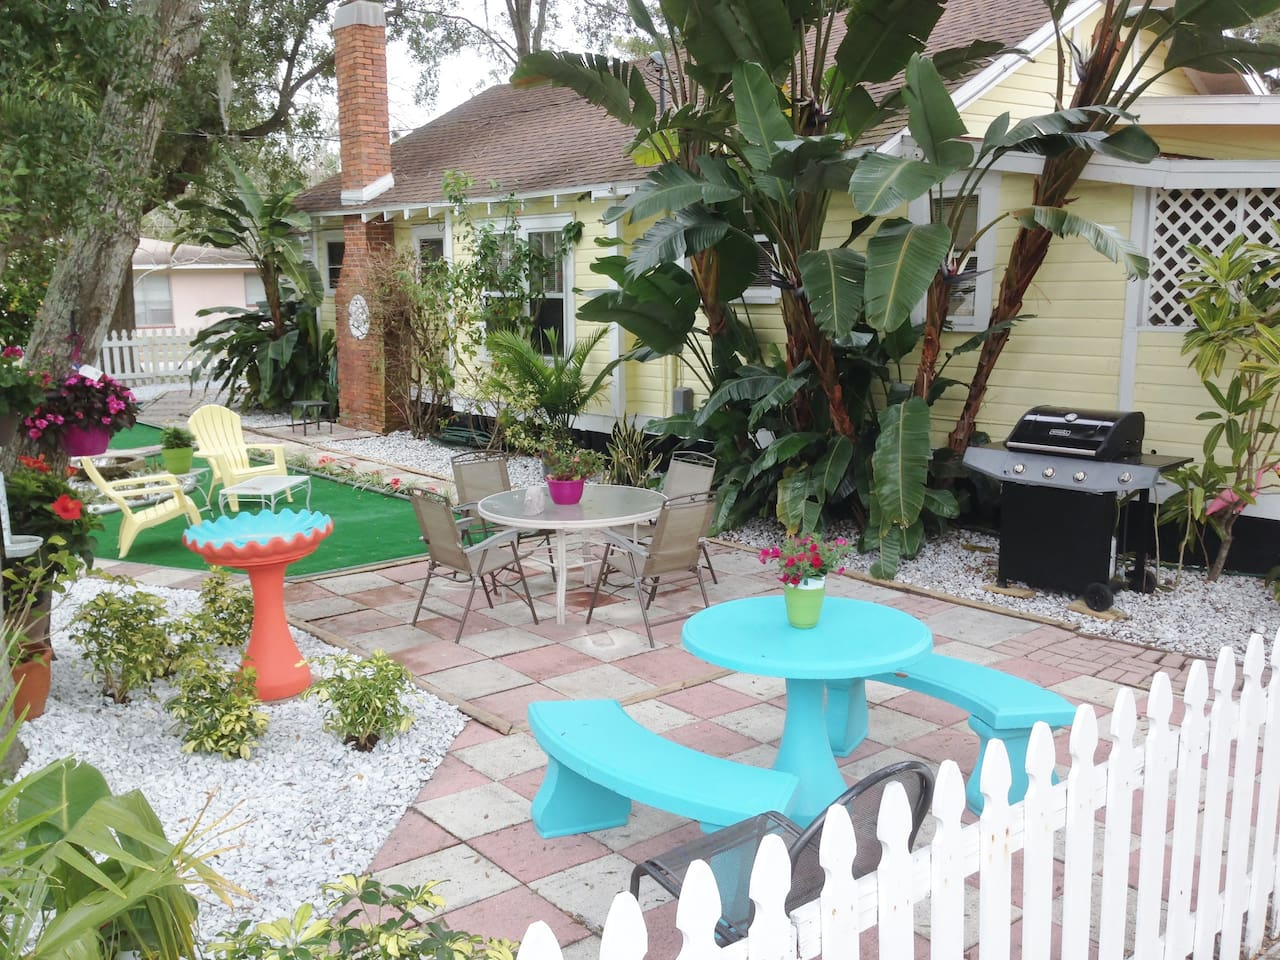 Side yard with BBQ grill